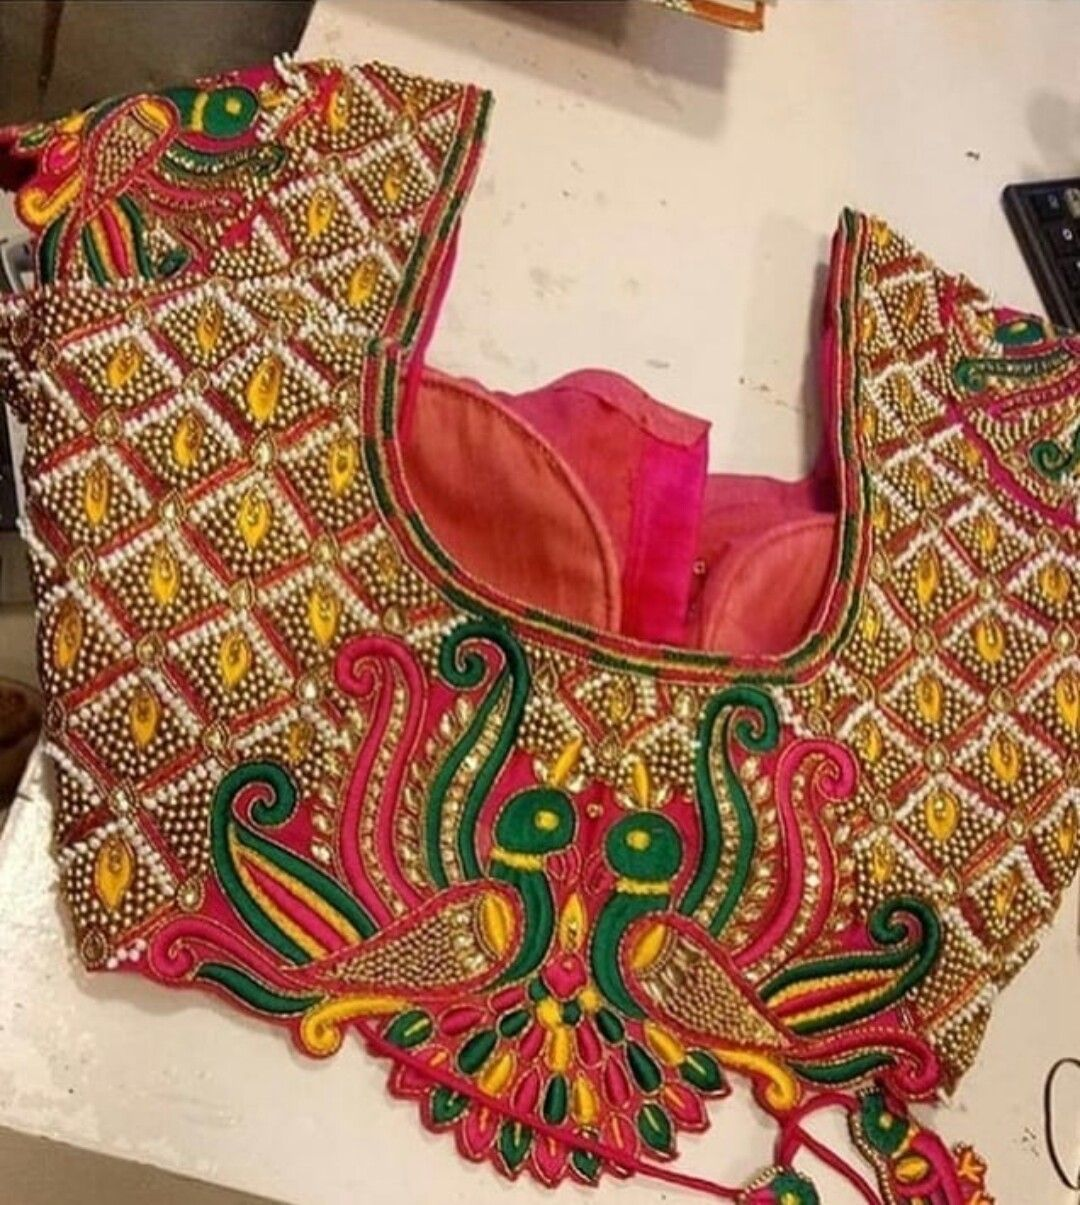 Saree dress blouse sari south indian designs aari embroidery also pin by firdous laskar on in pinterest rh